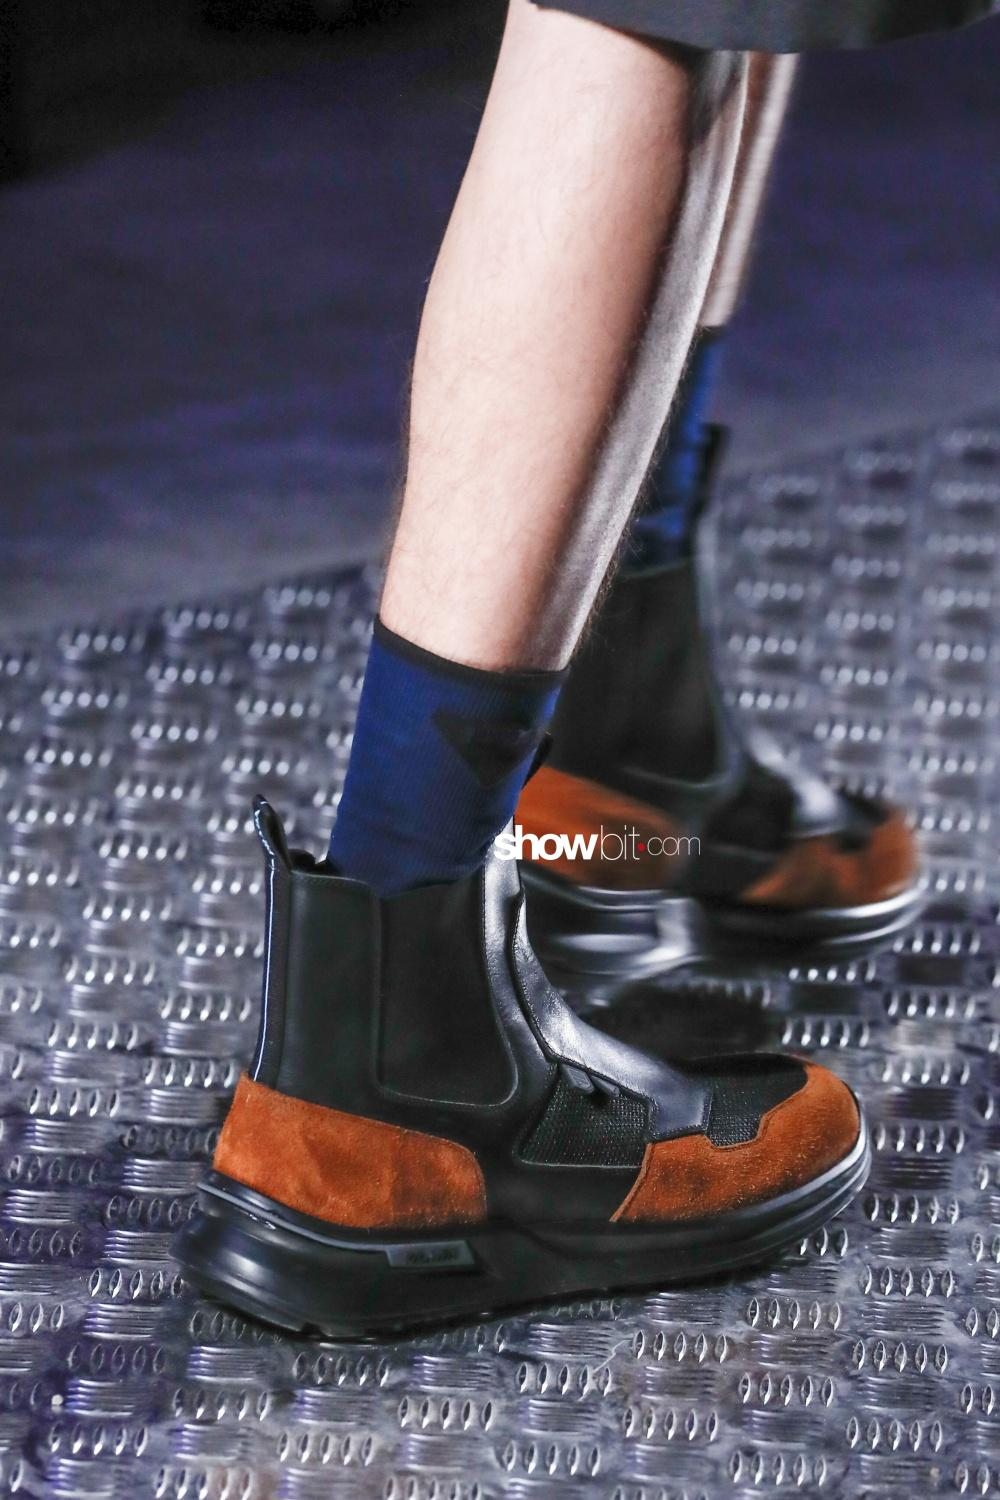 Prada shoes Fall 2018 Milano